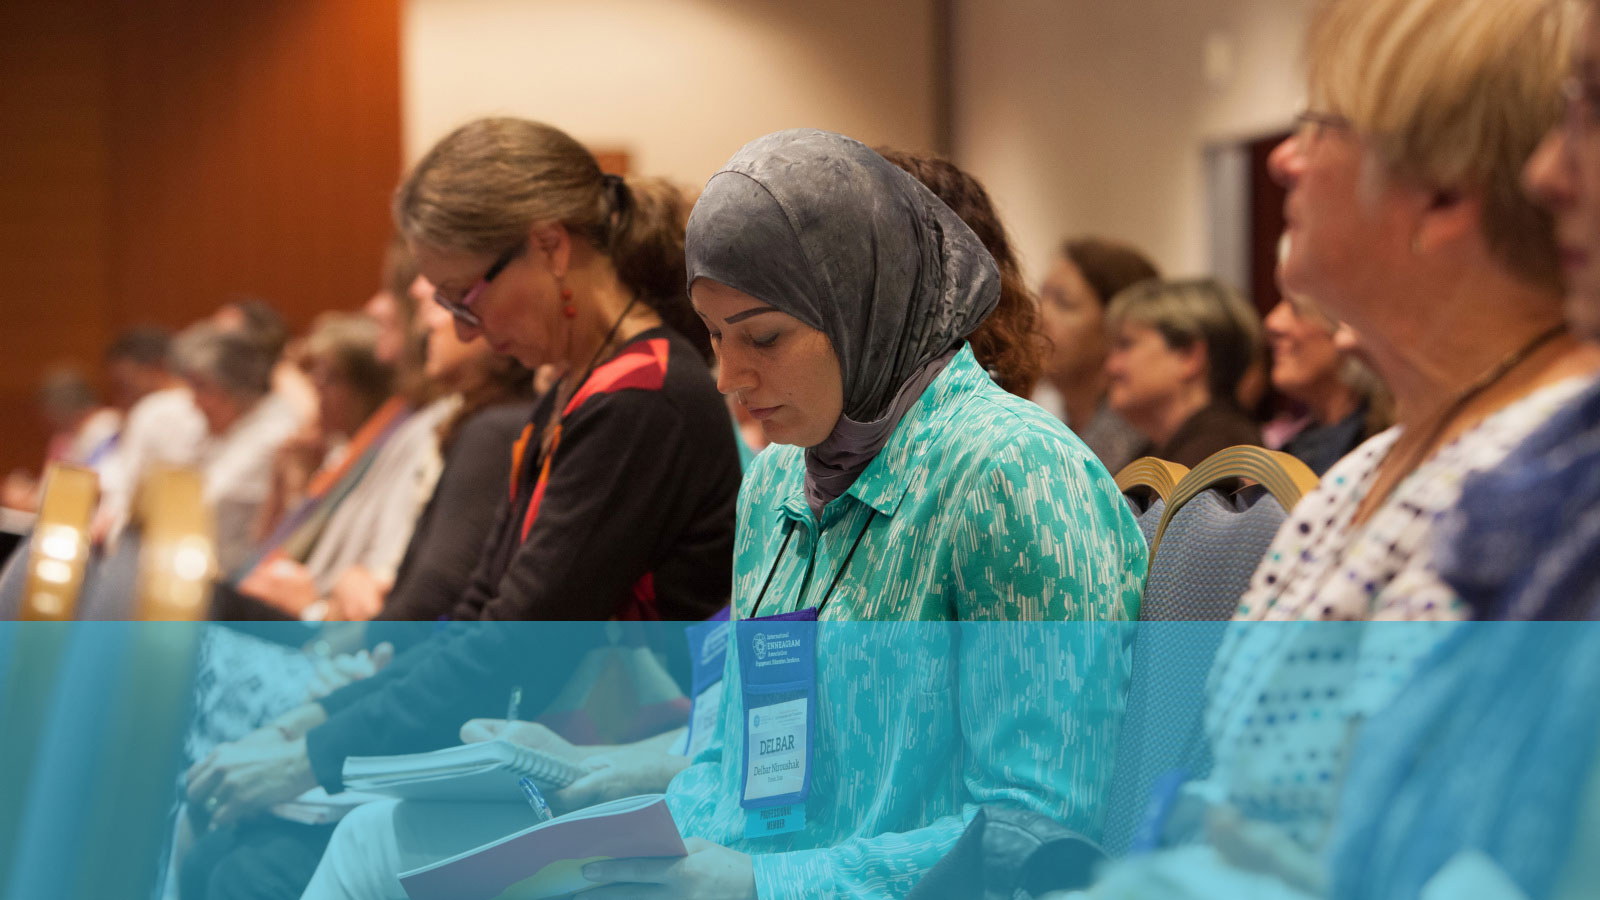 The 2018 IEA Global Pre-Conference Panels will focus on the Enneagram and Business, the World and Diverse Populations.